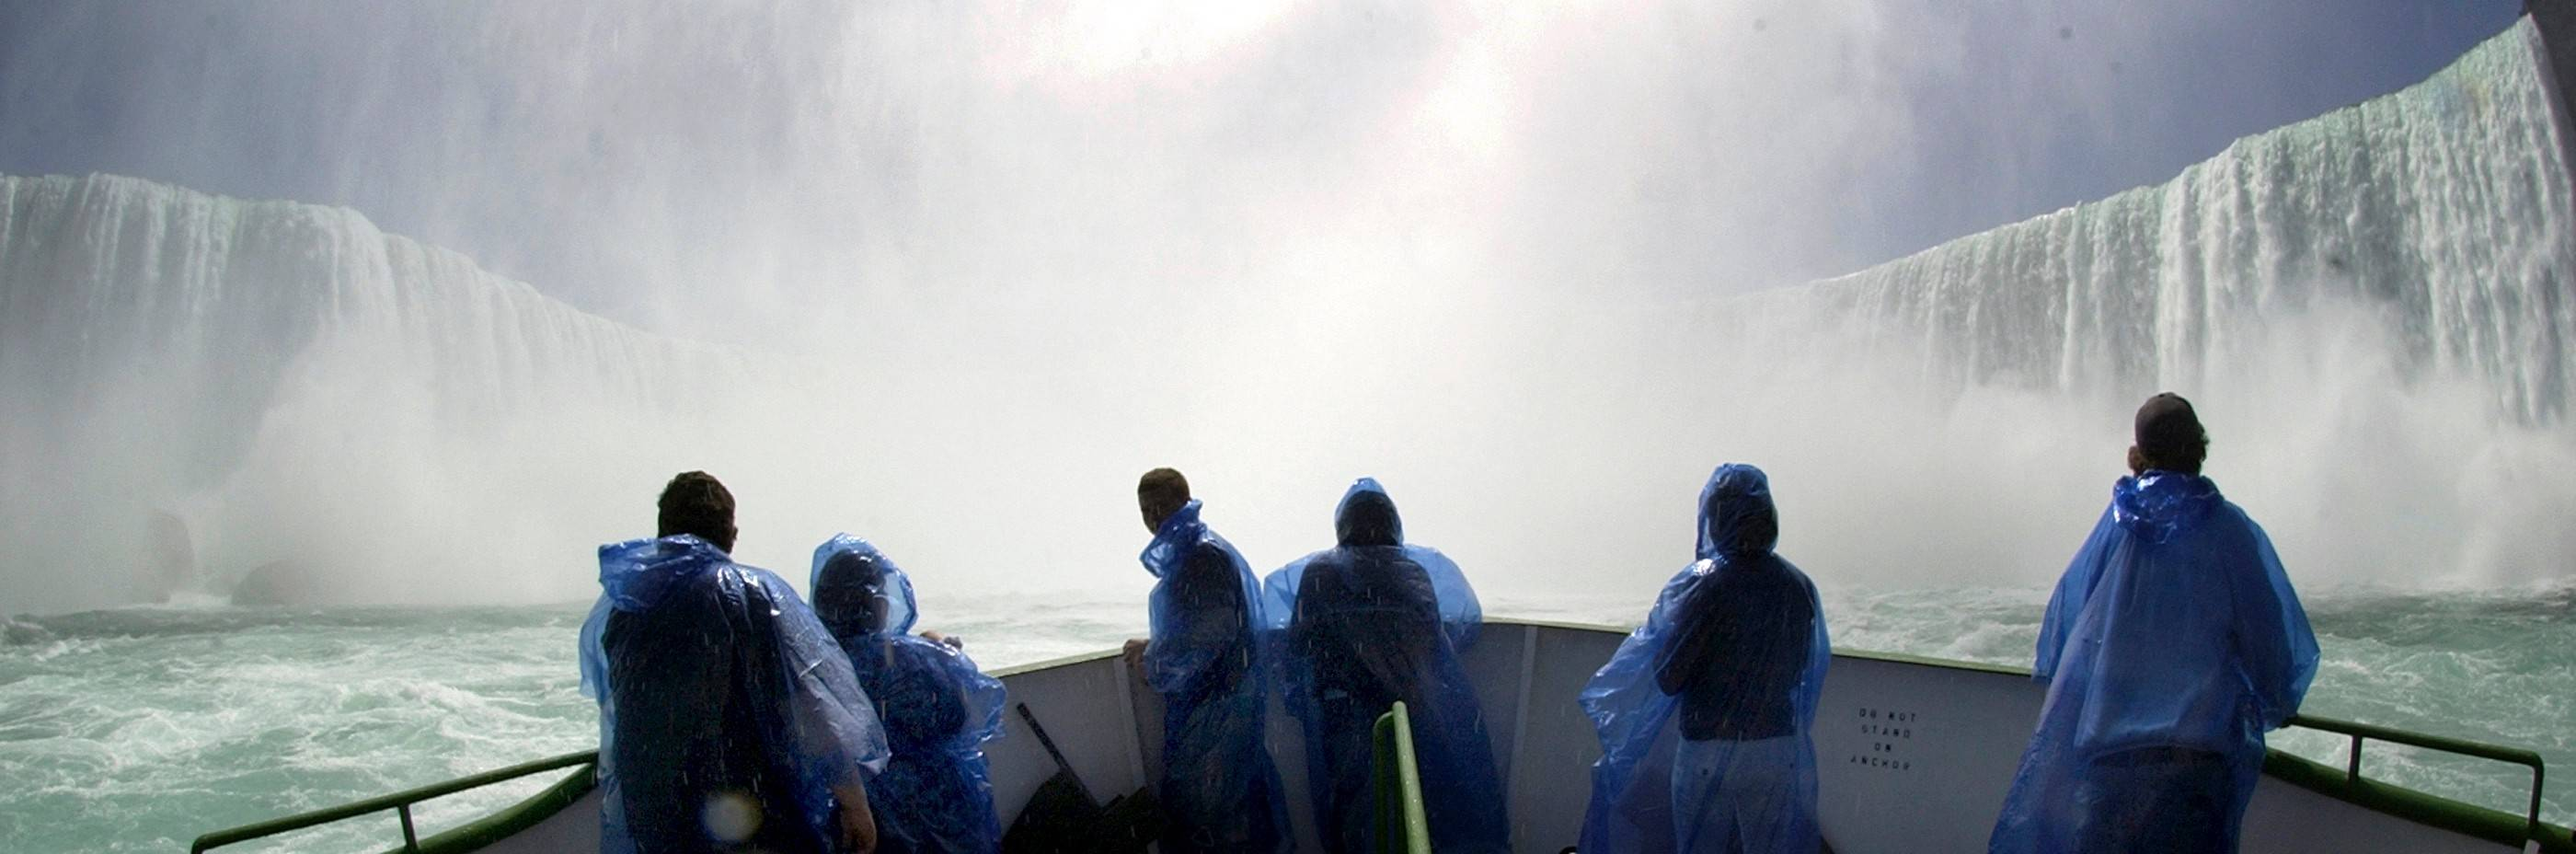 A group of tourists braves opening day on the bow of the Maid of the Mist at the base of the Horseshoe Falls, from Niagara Falls, N.Y. After 150 years of having no competitors at the bottom of the falls, Maid of the Mist tour boats now face a rival.